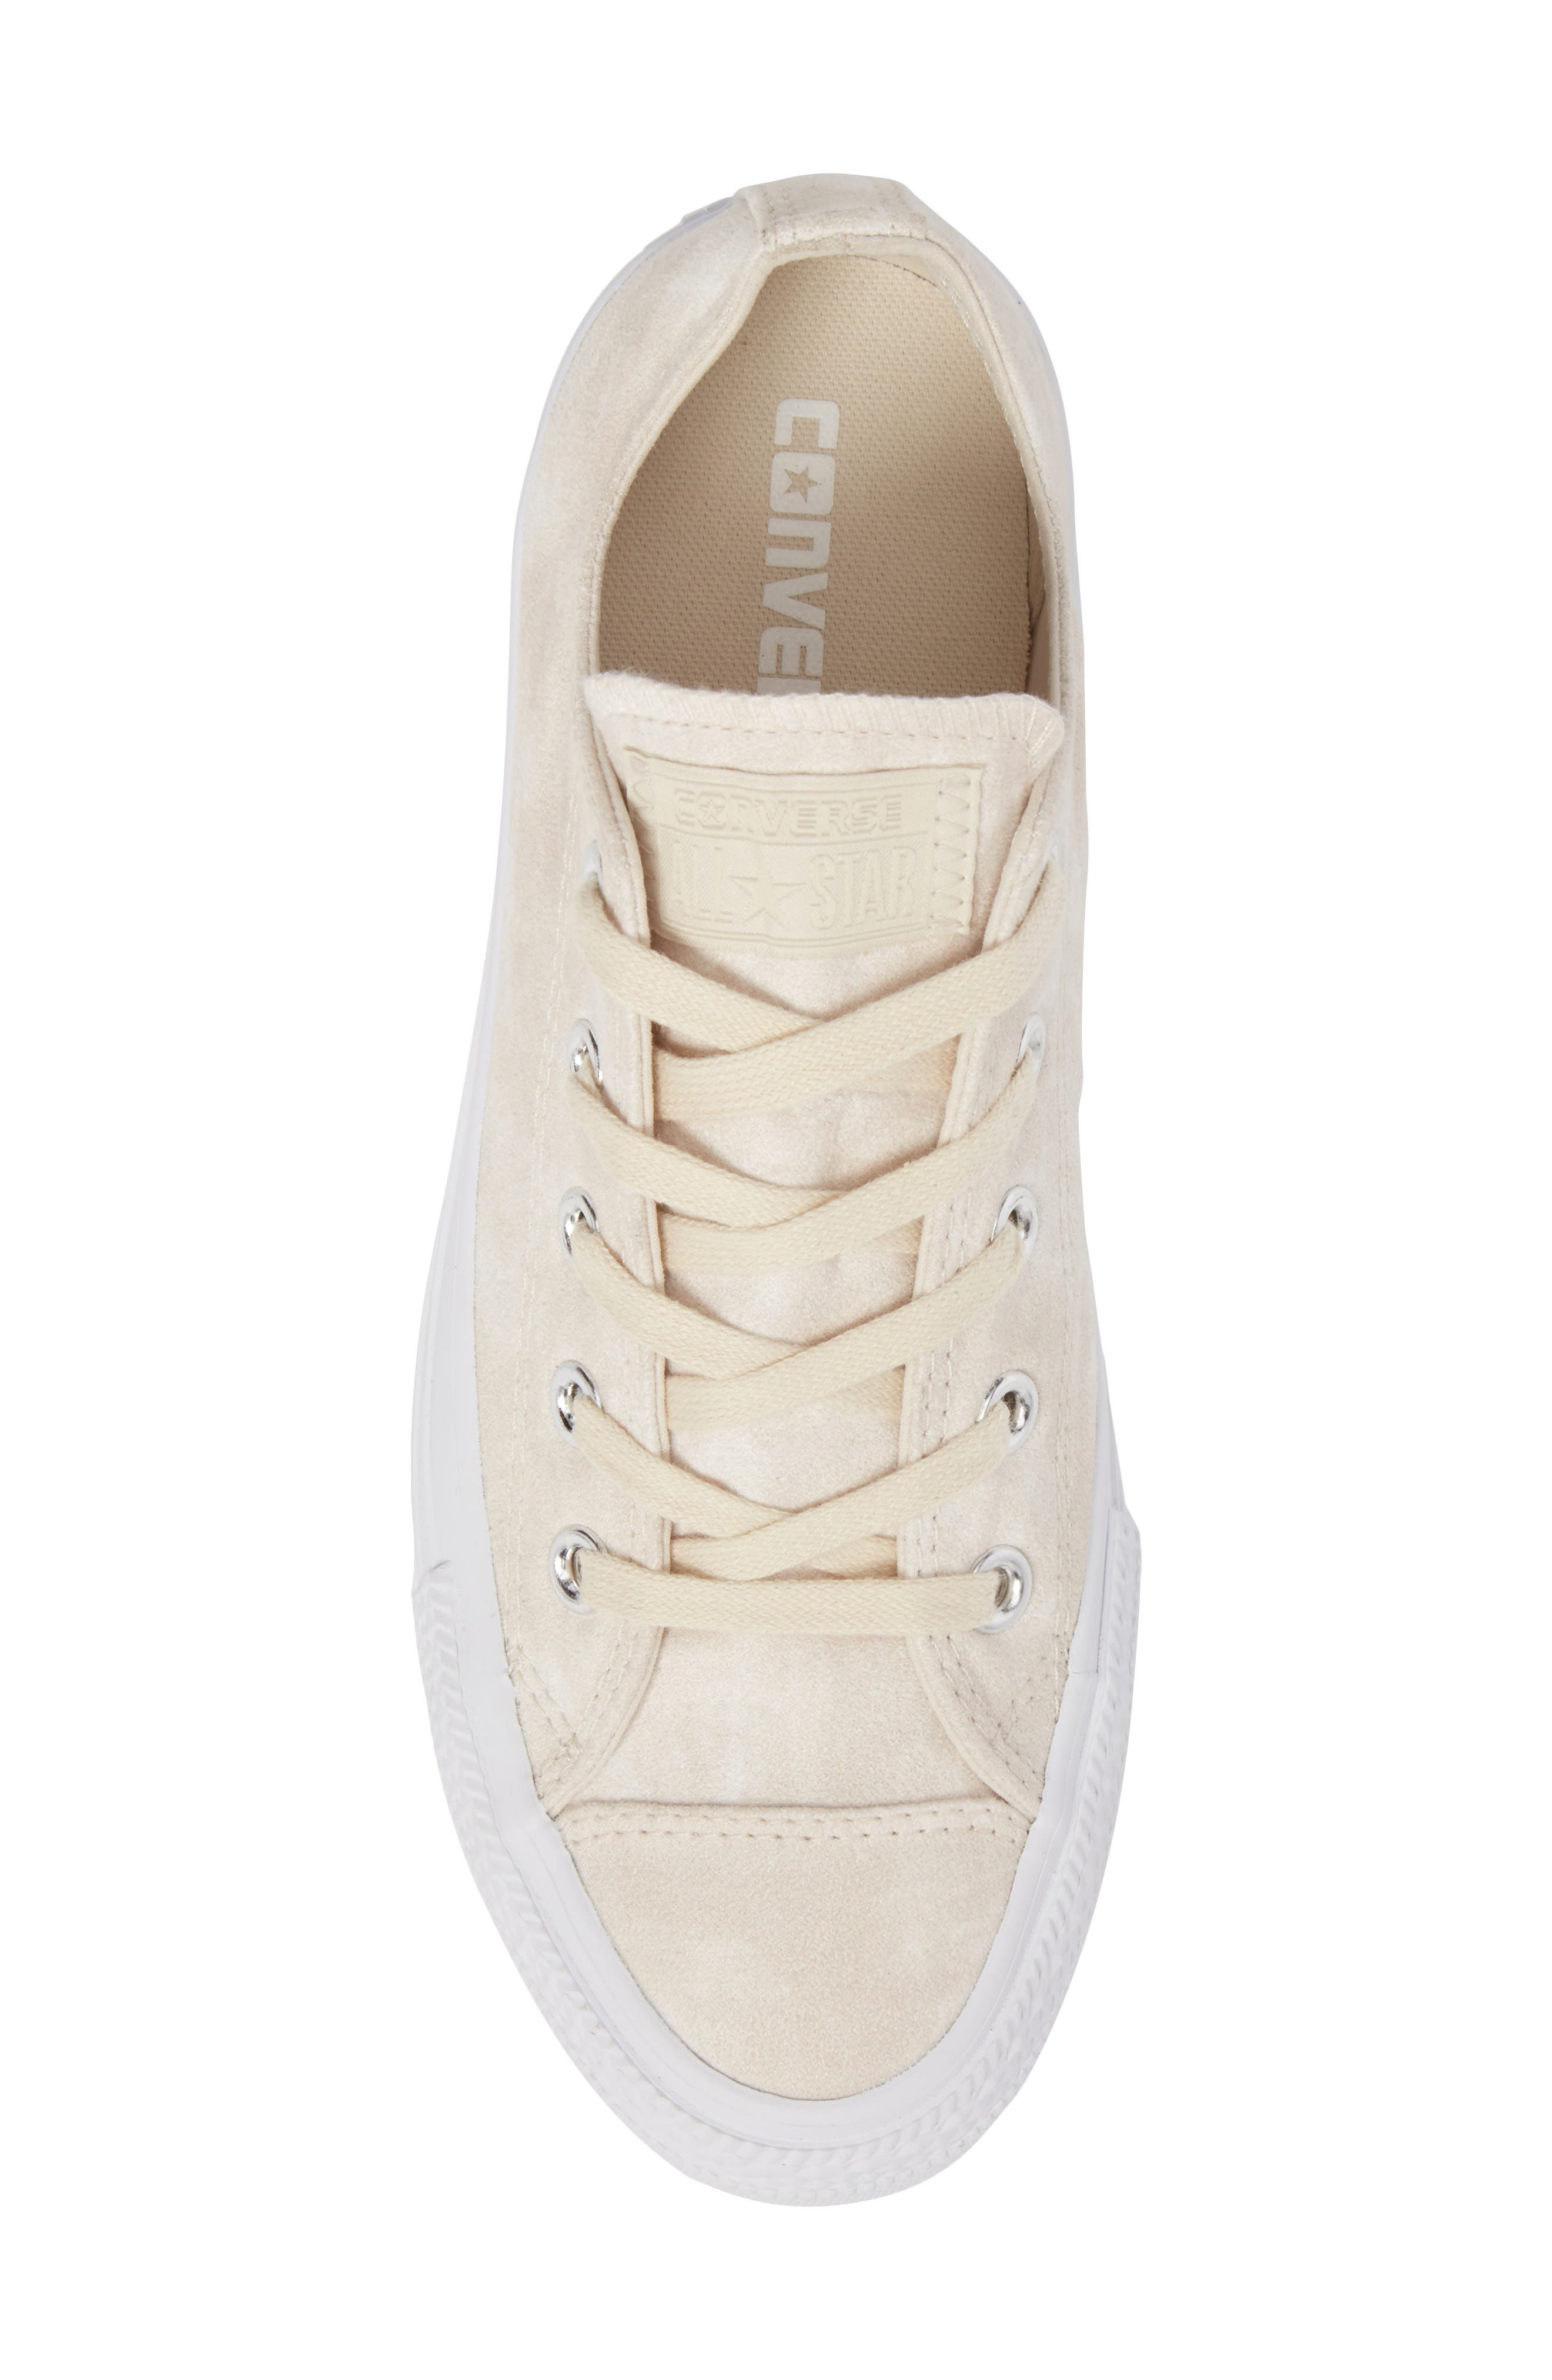 Chuck Taylor<sup>®</sup> All Star<sup>®</sup> Peached Low Top Sneaker,                             Alternate thumbnail 5, color,                             Driftwood